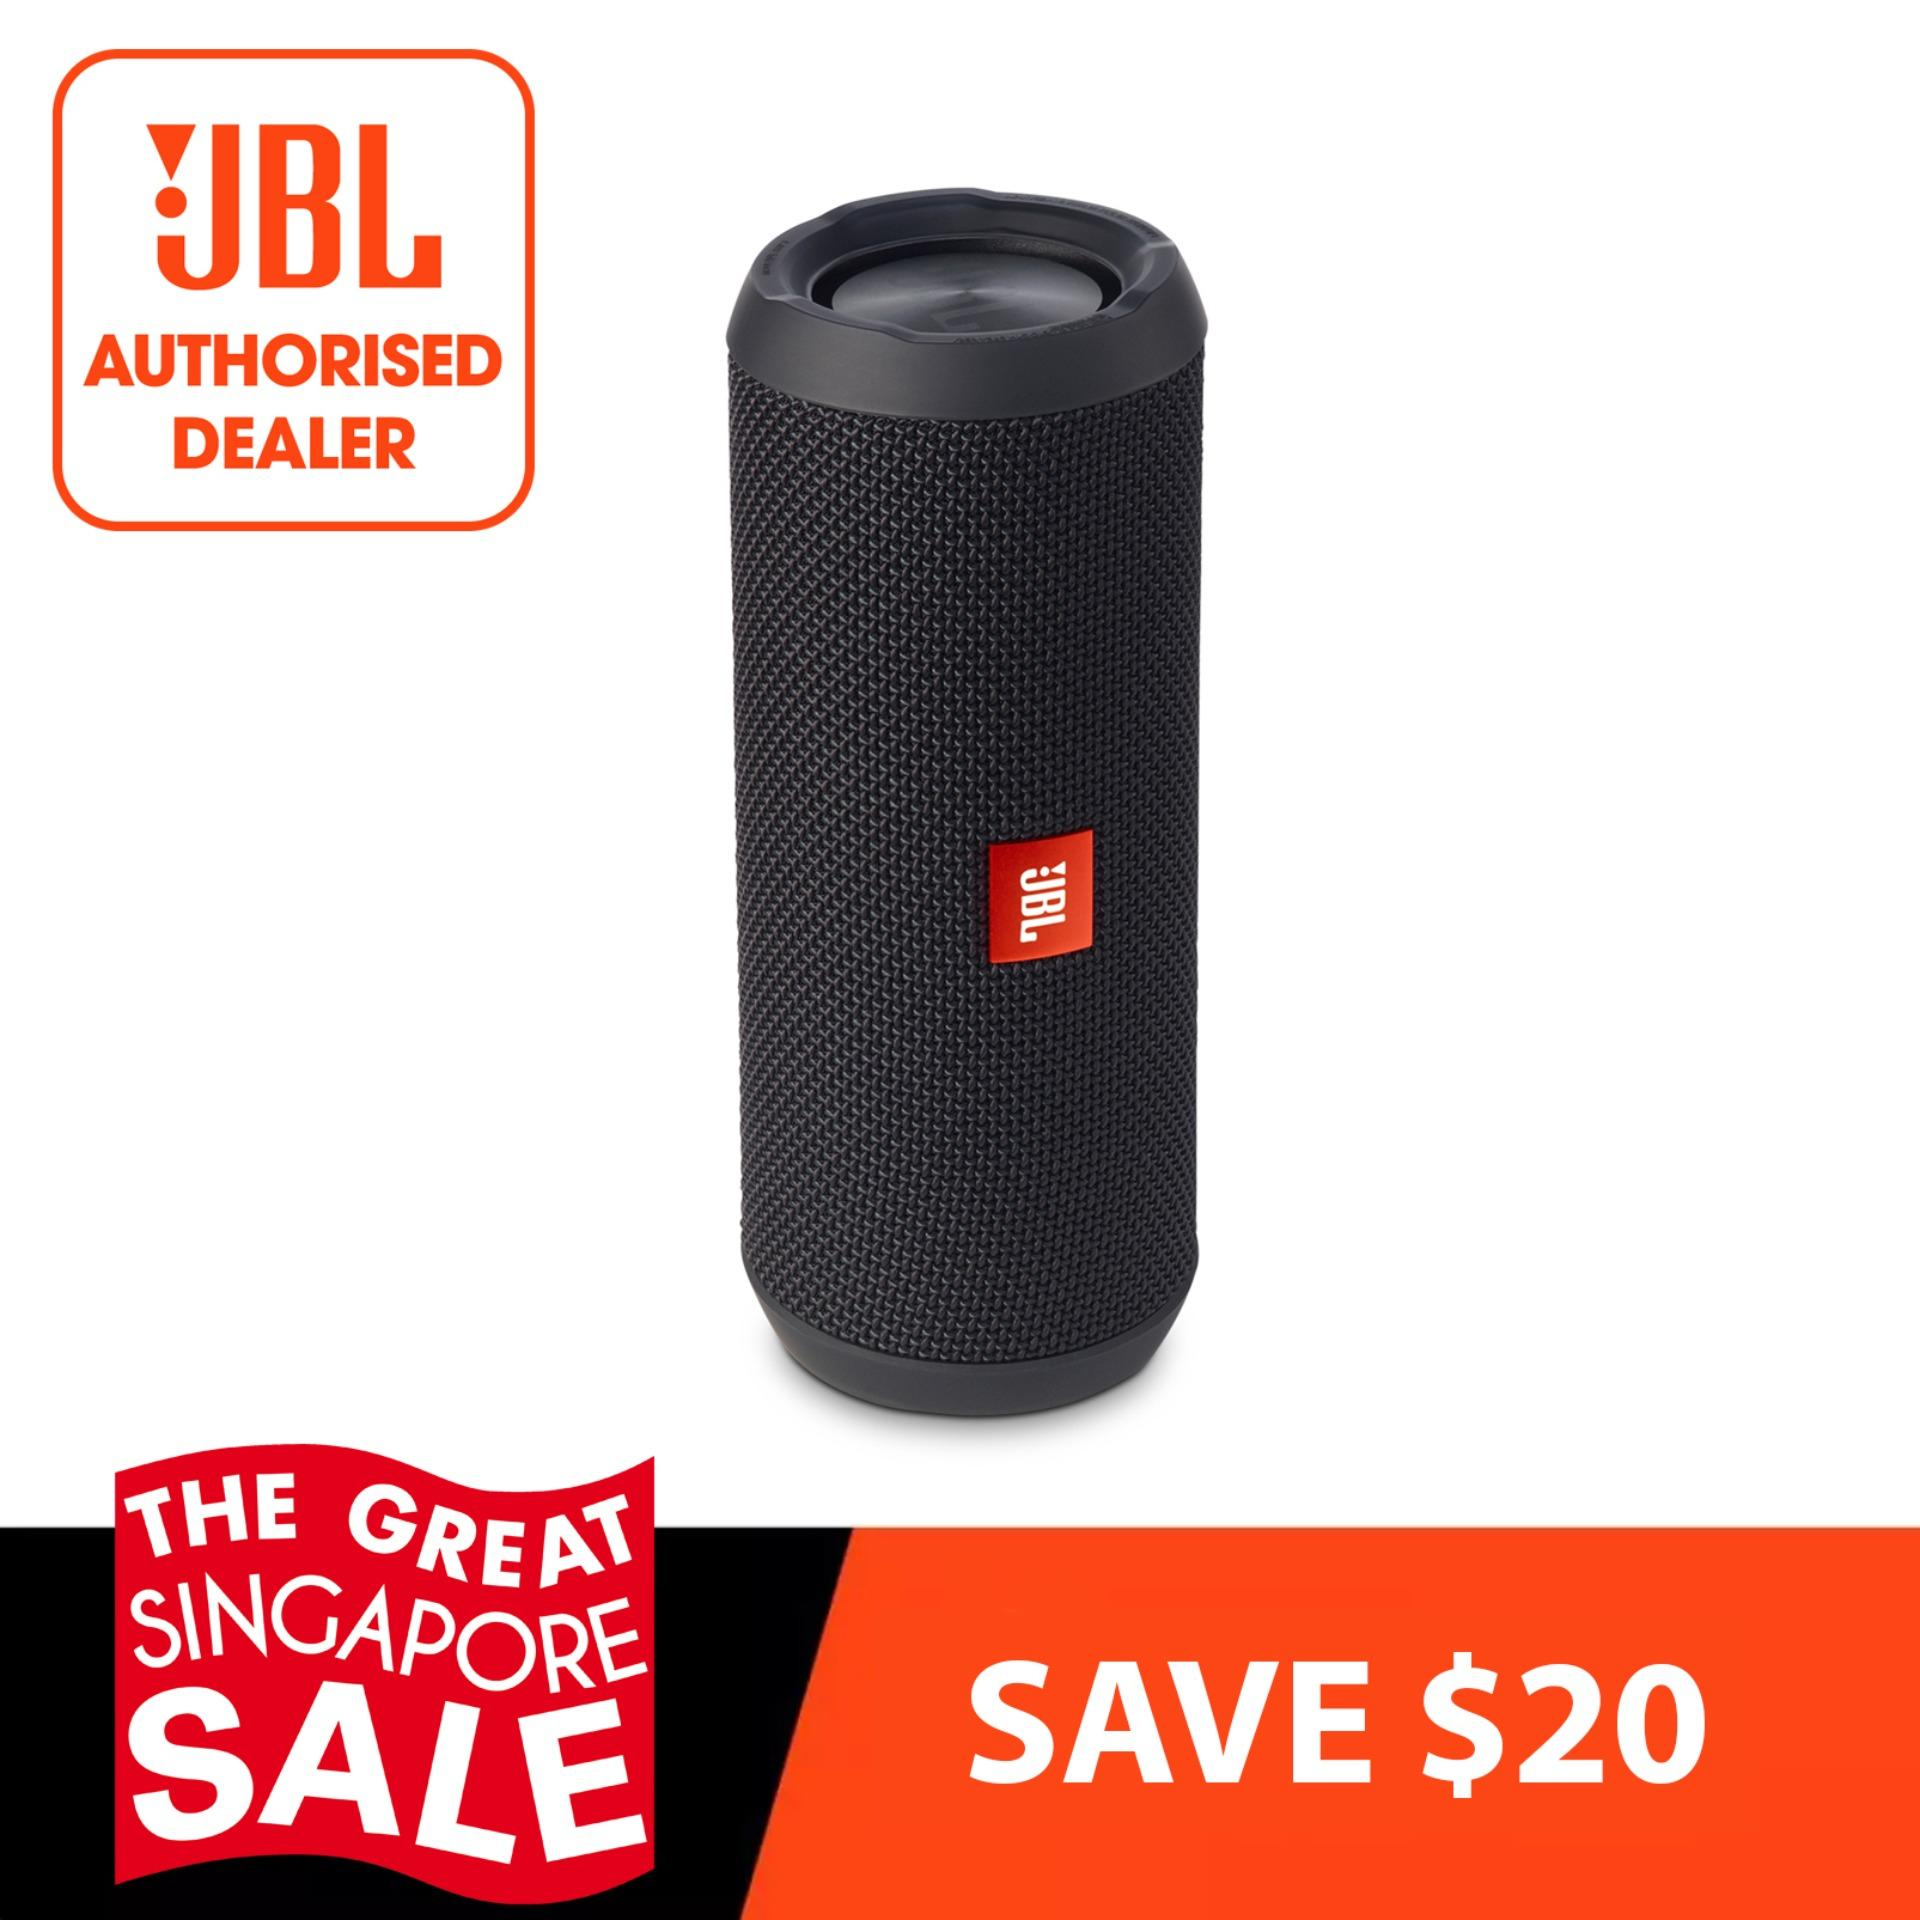 Discounted Jbl Flip 3 Splashproof Portable Bluetooth Speaker With Powerful Sound And Speakerphone Technology